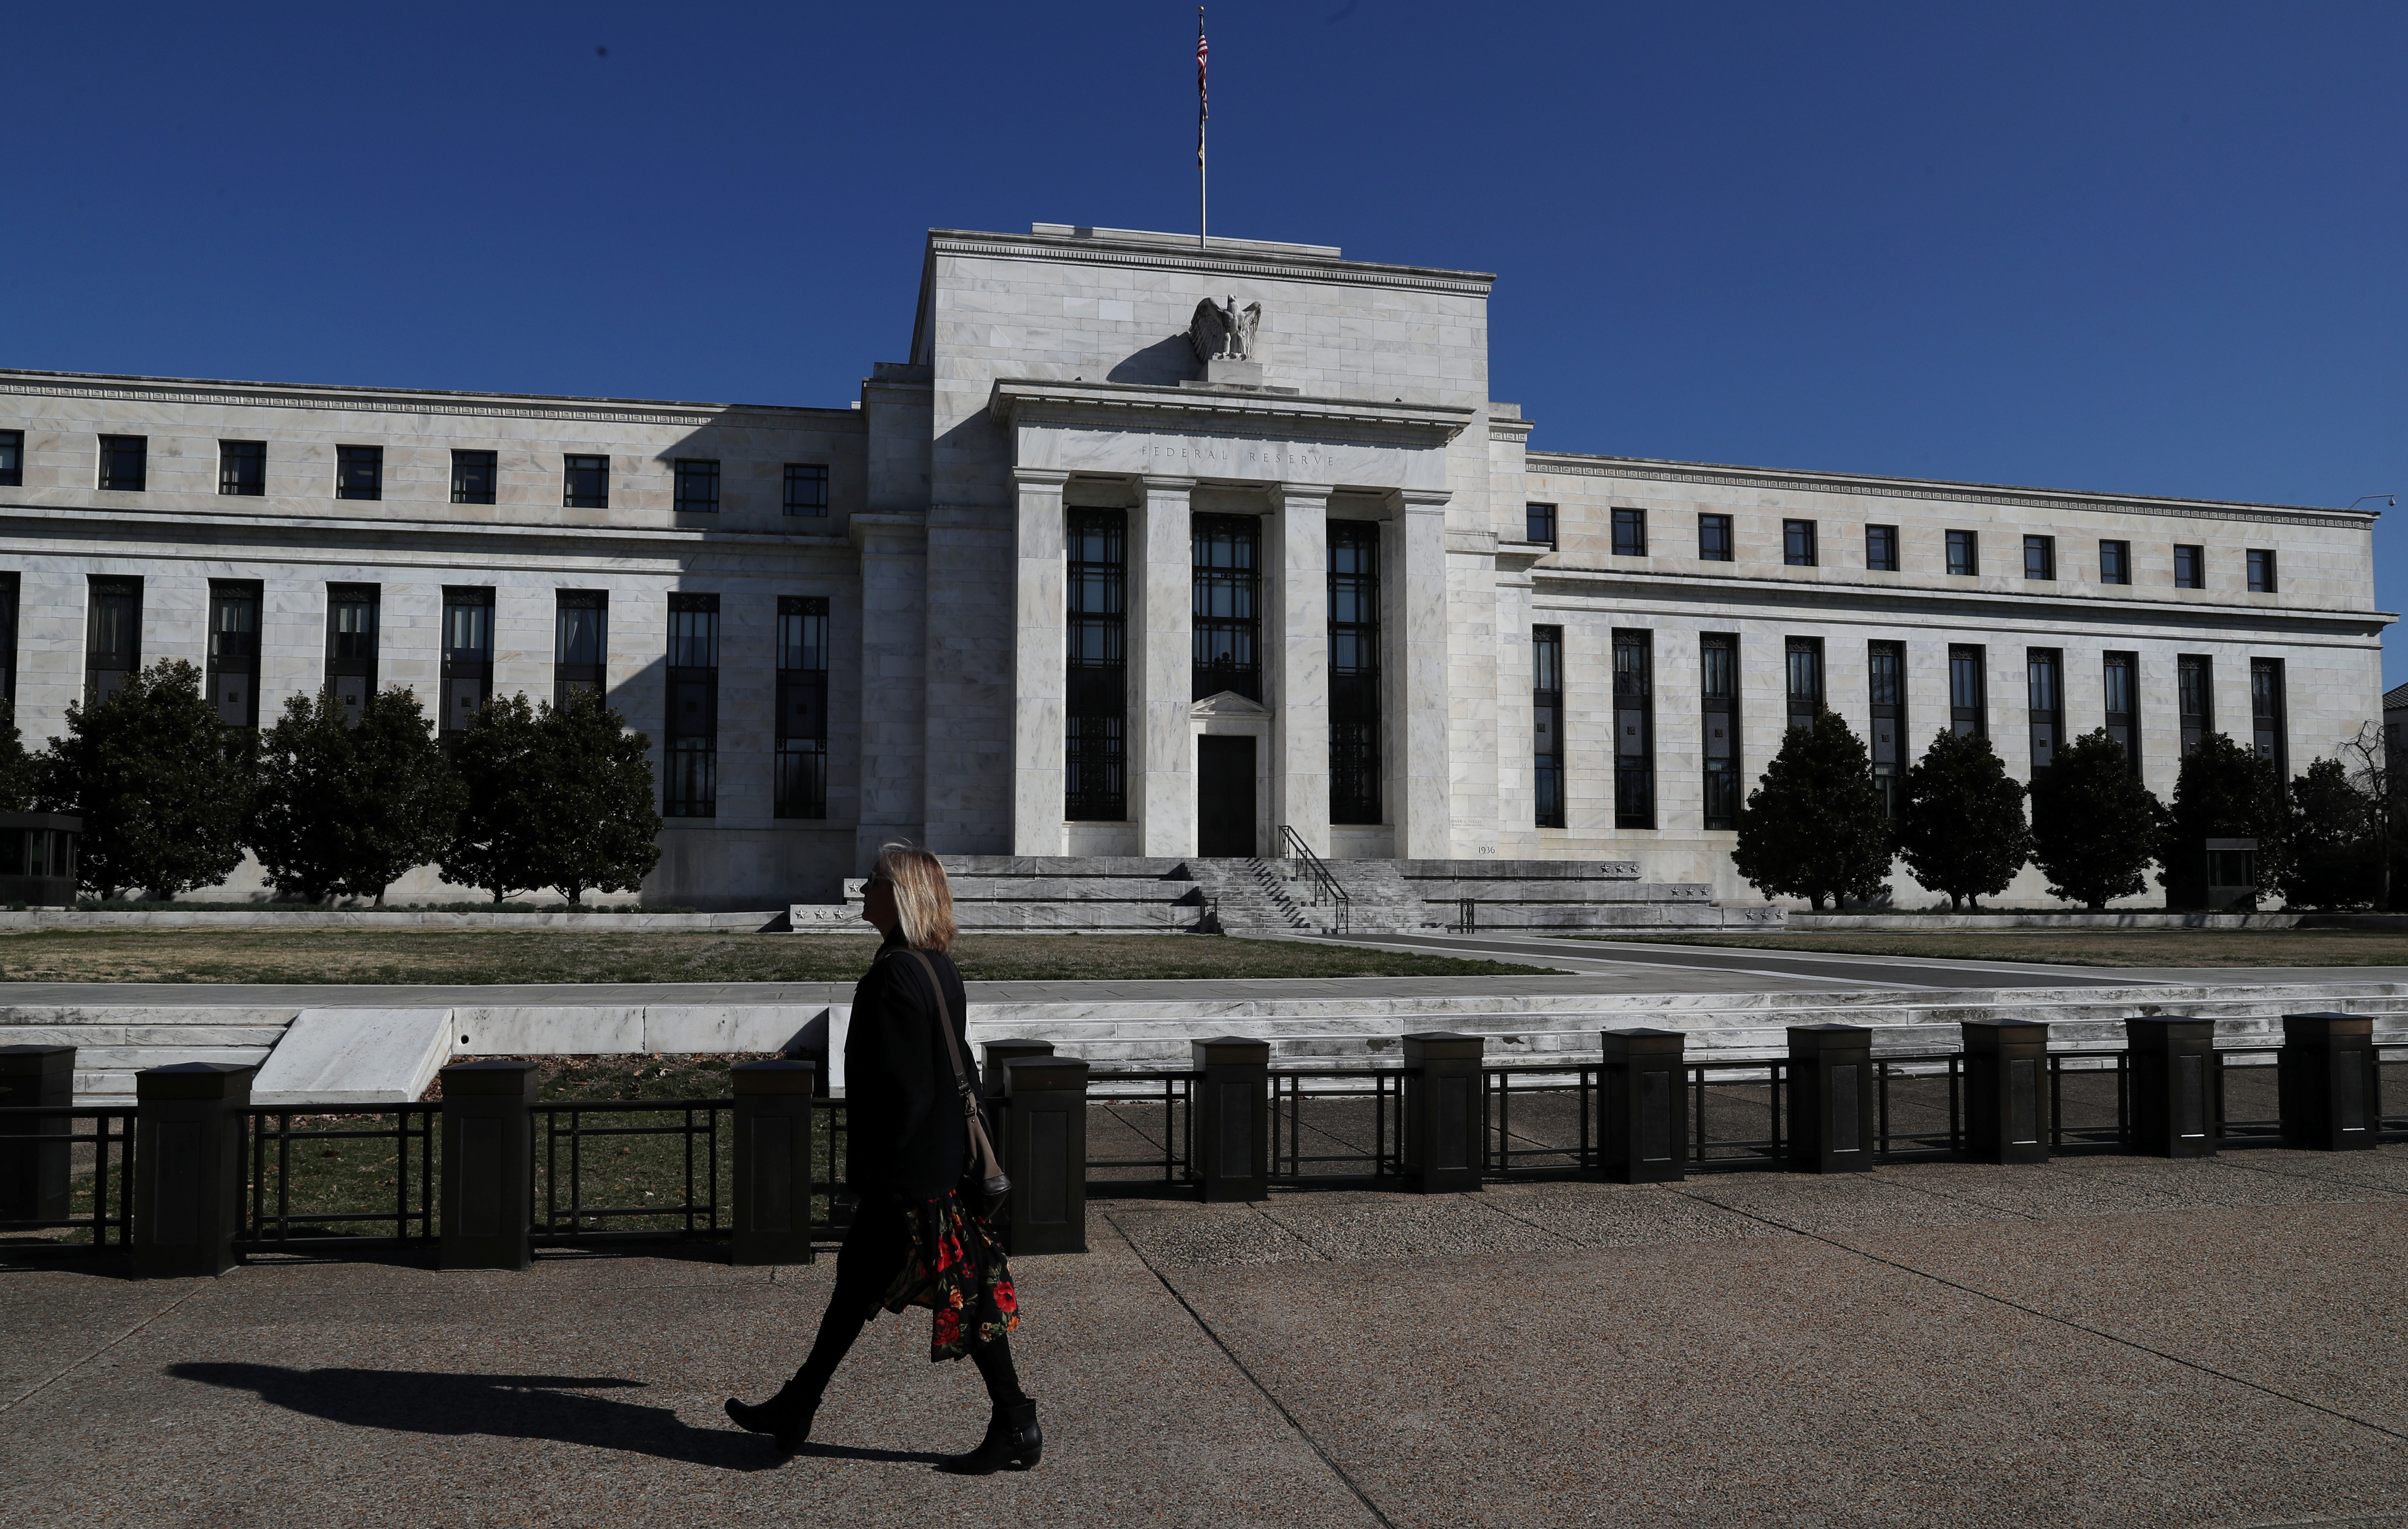 A pedestrian walks past the Federal Reserve Board building on Constitution Avenue in Washington, March 19, 2019. REUTERS/Leah Millis